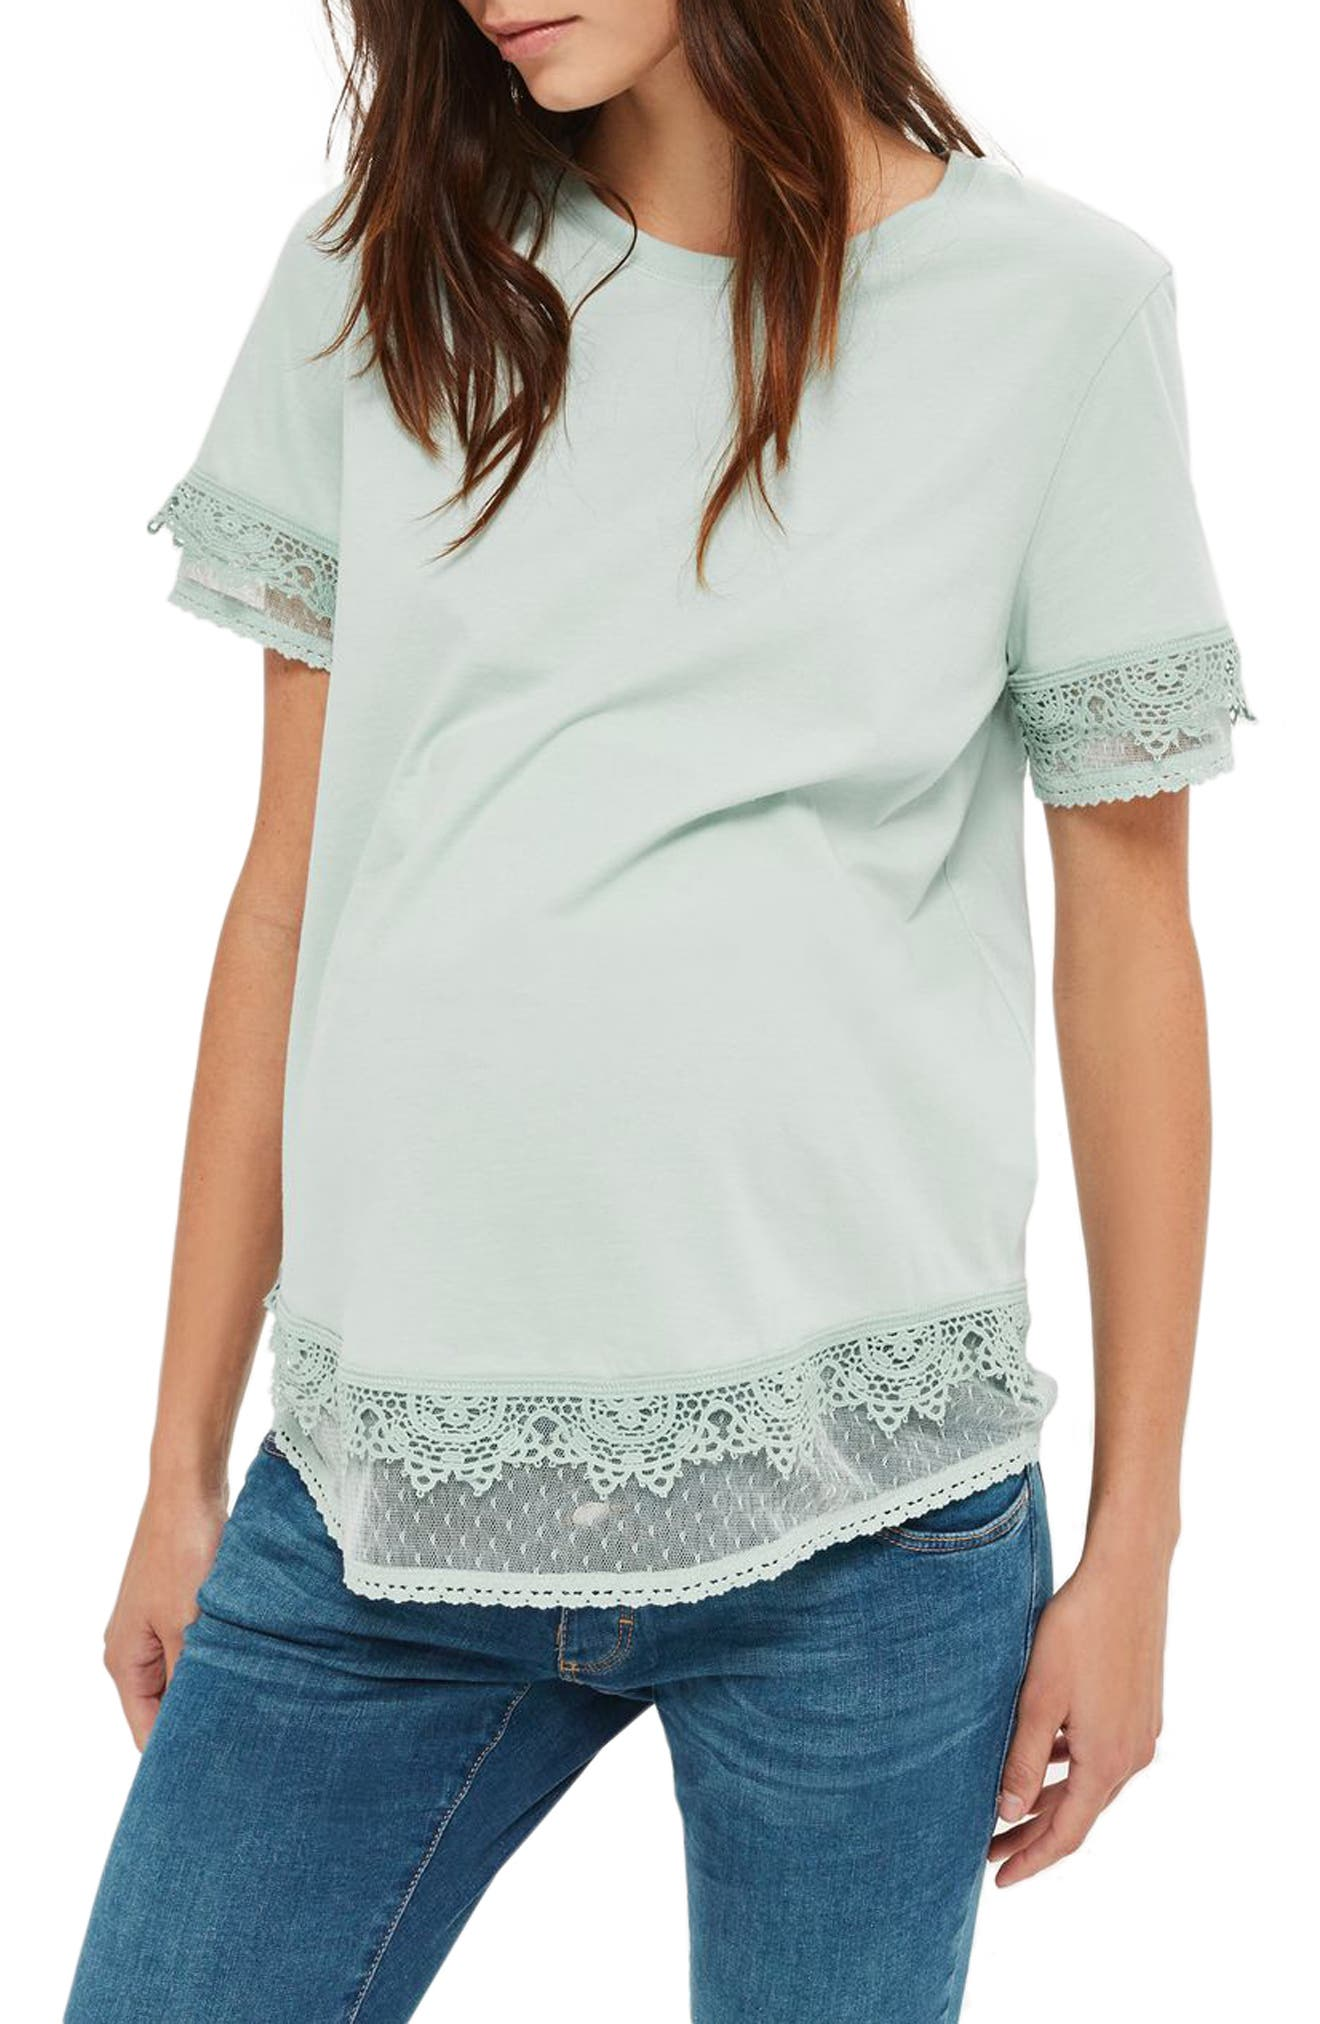 Topshop Tiered Trim Maternity Tee